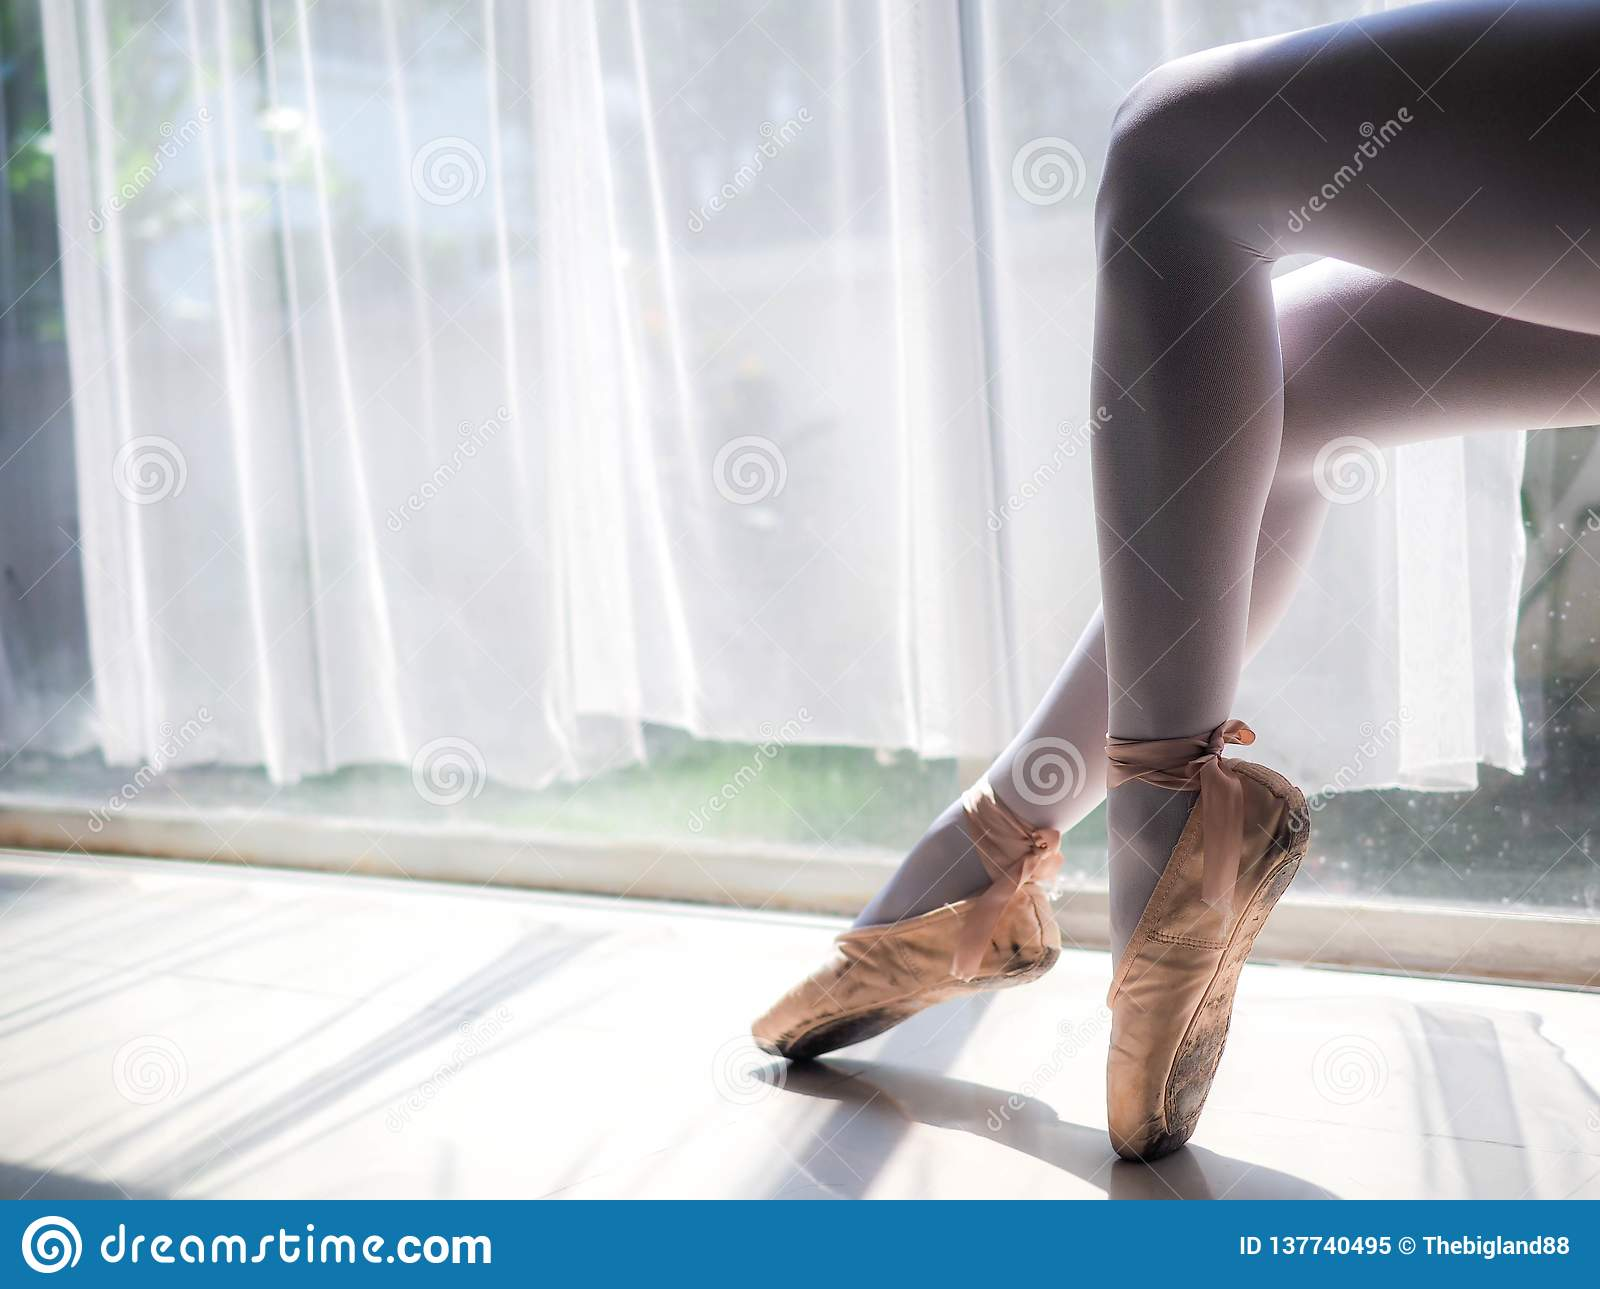 Beautiful legs of young ballerina. Ballet practice. Beautiful slim graceful feet of ballet dancer